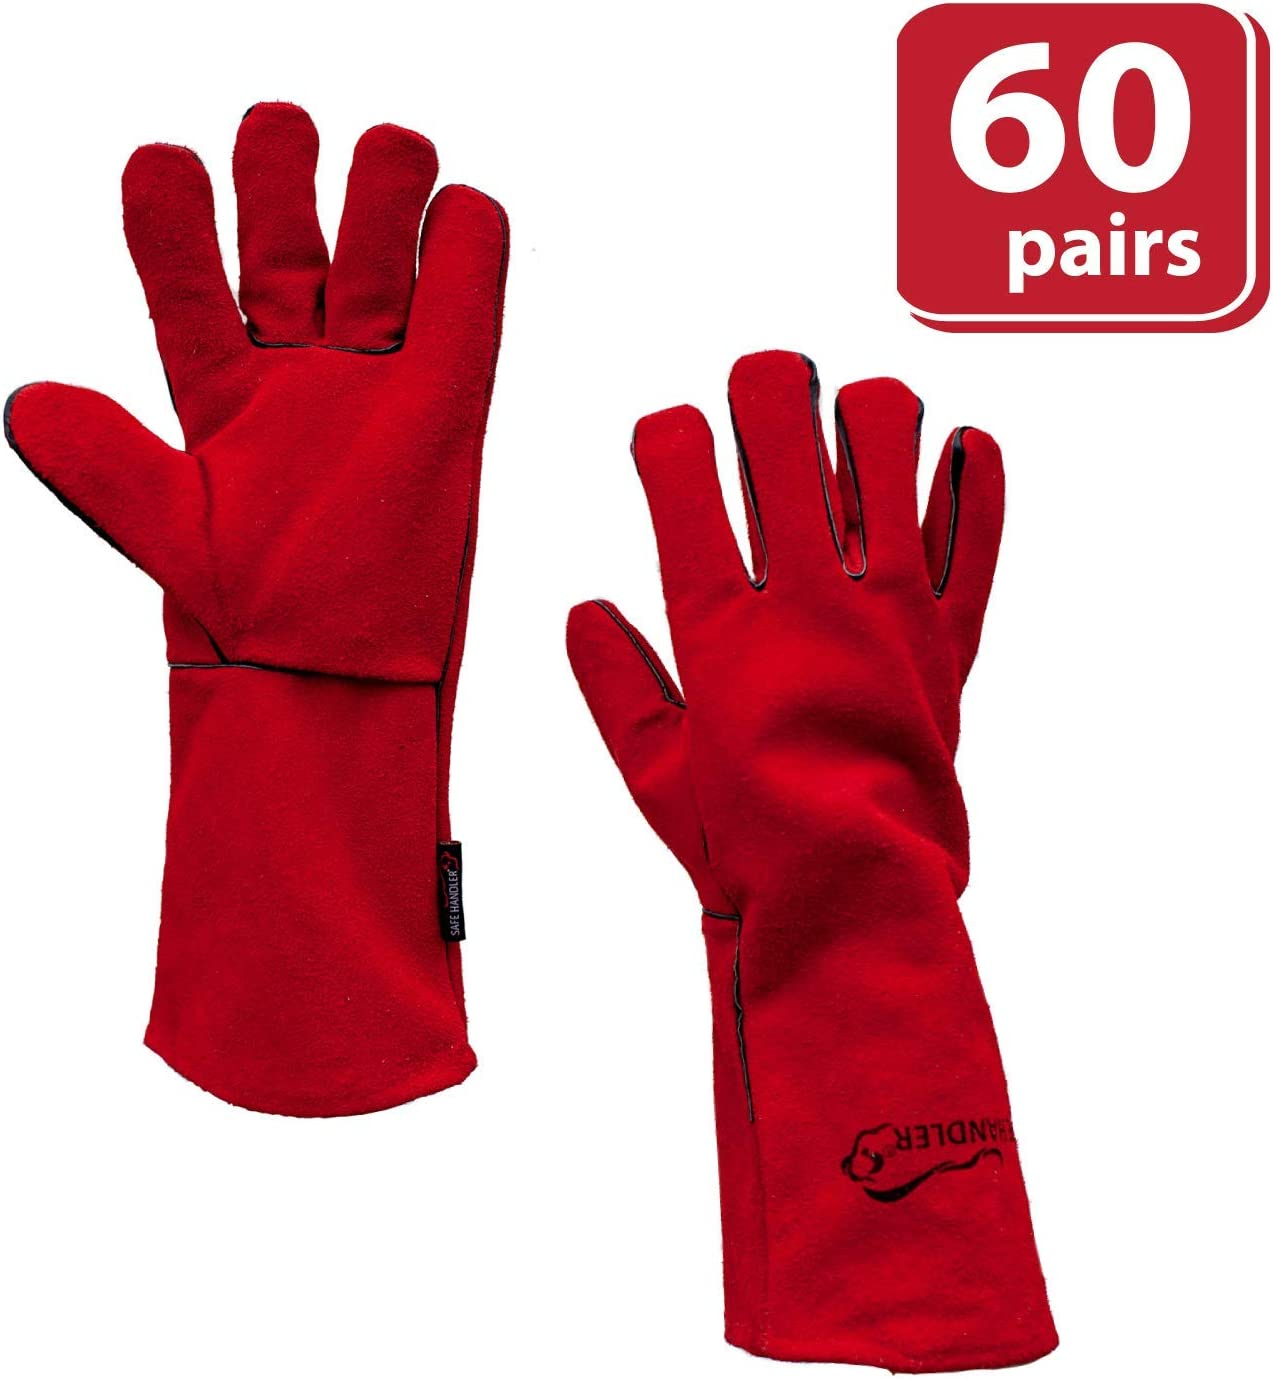 Split Cowhide Leather Leather Palm Heat Resistance SAFE HANDLER Deluxe 14 Welding Gloves with Reinforced Padding 1 Pair 14 inch Full Inside Lining Durable Protection